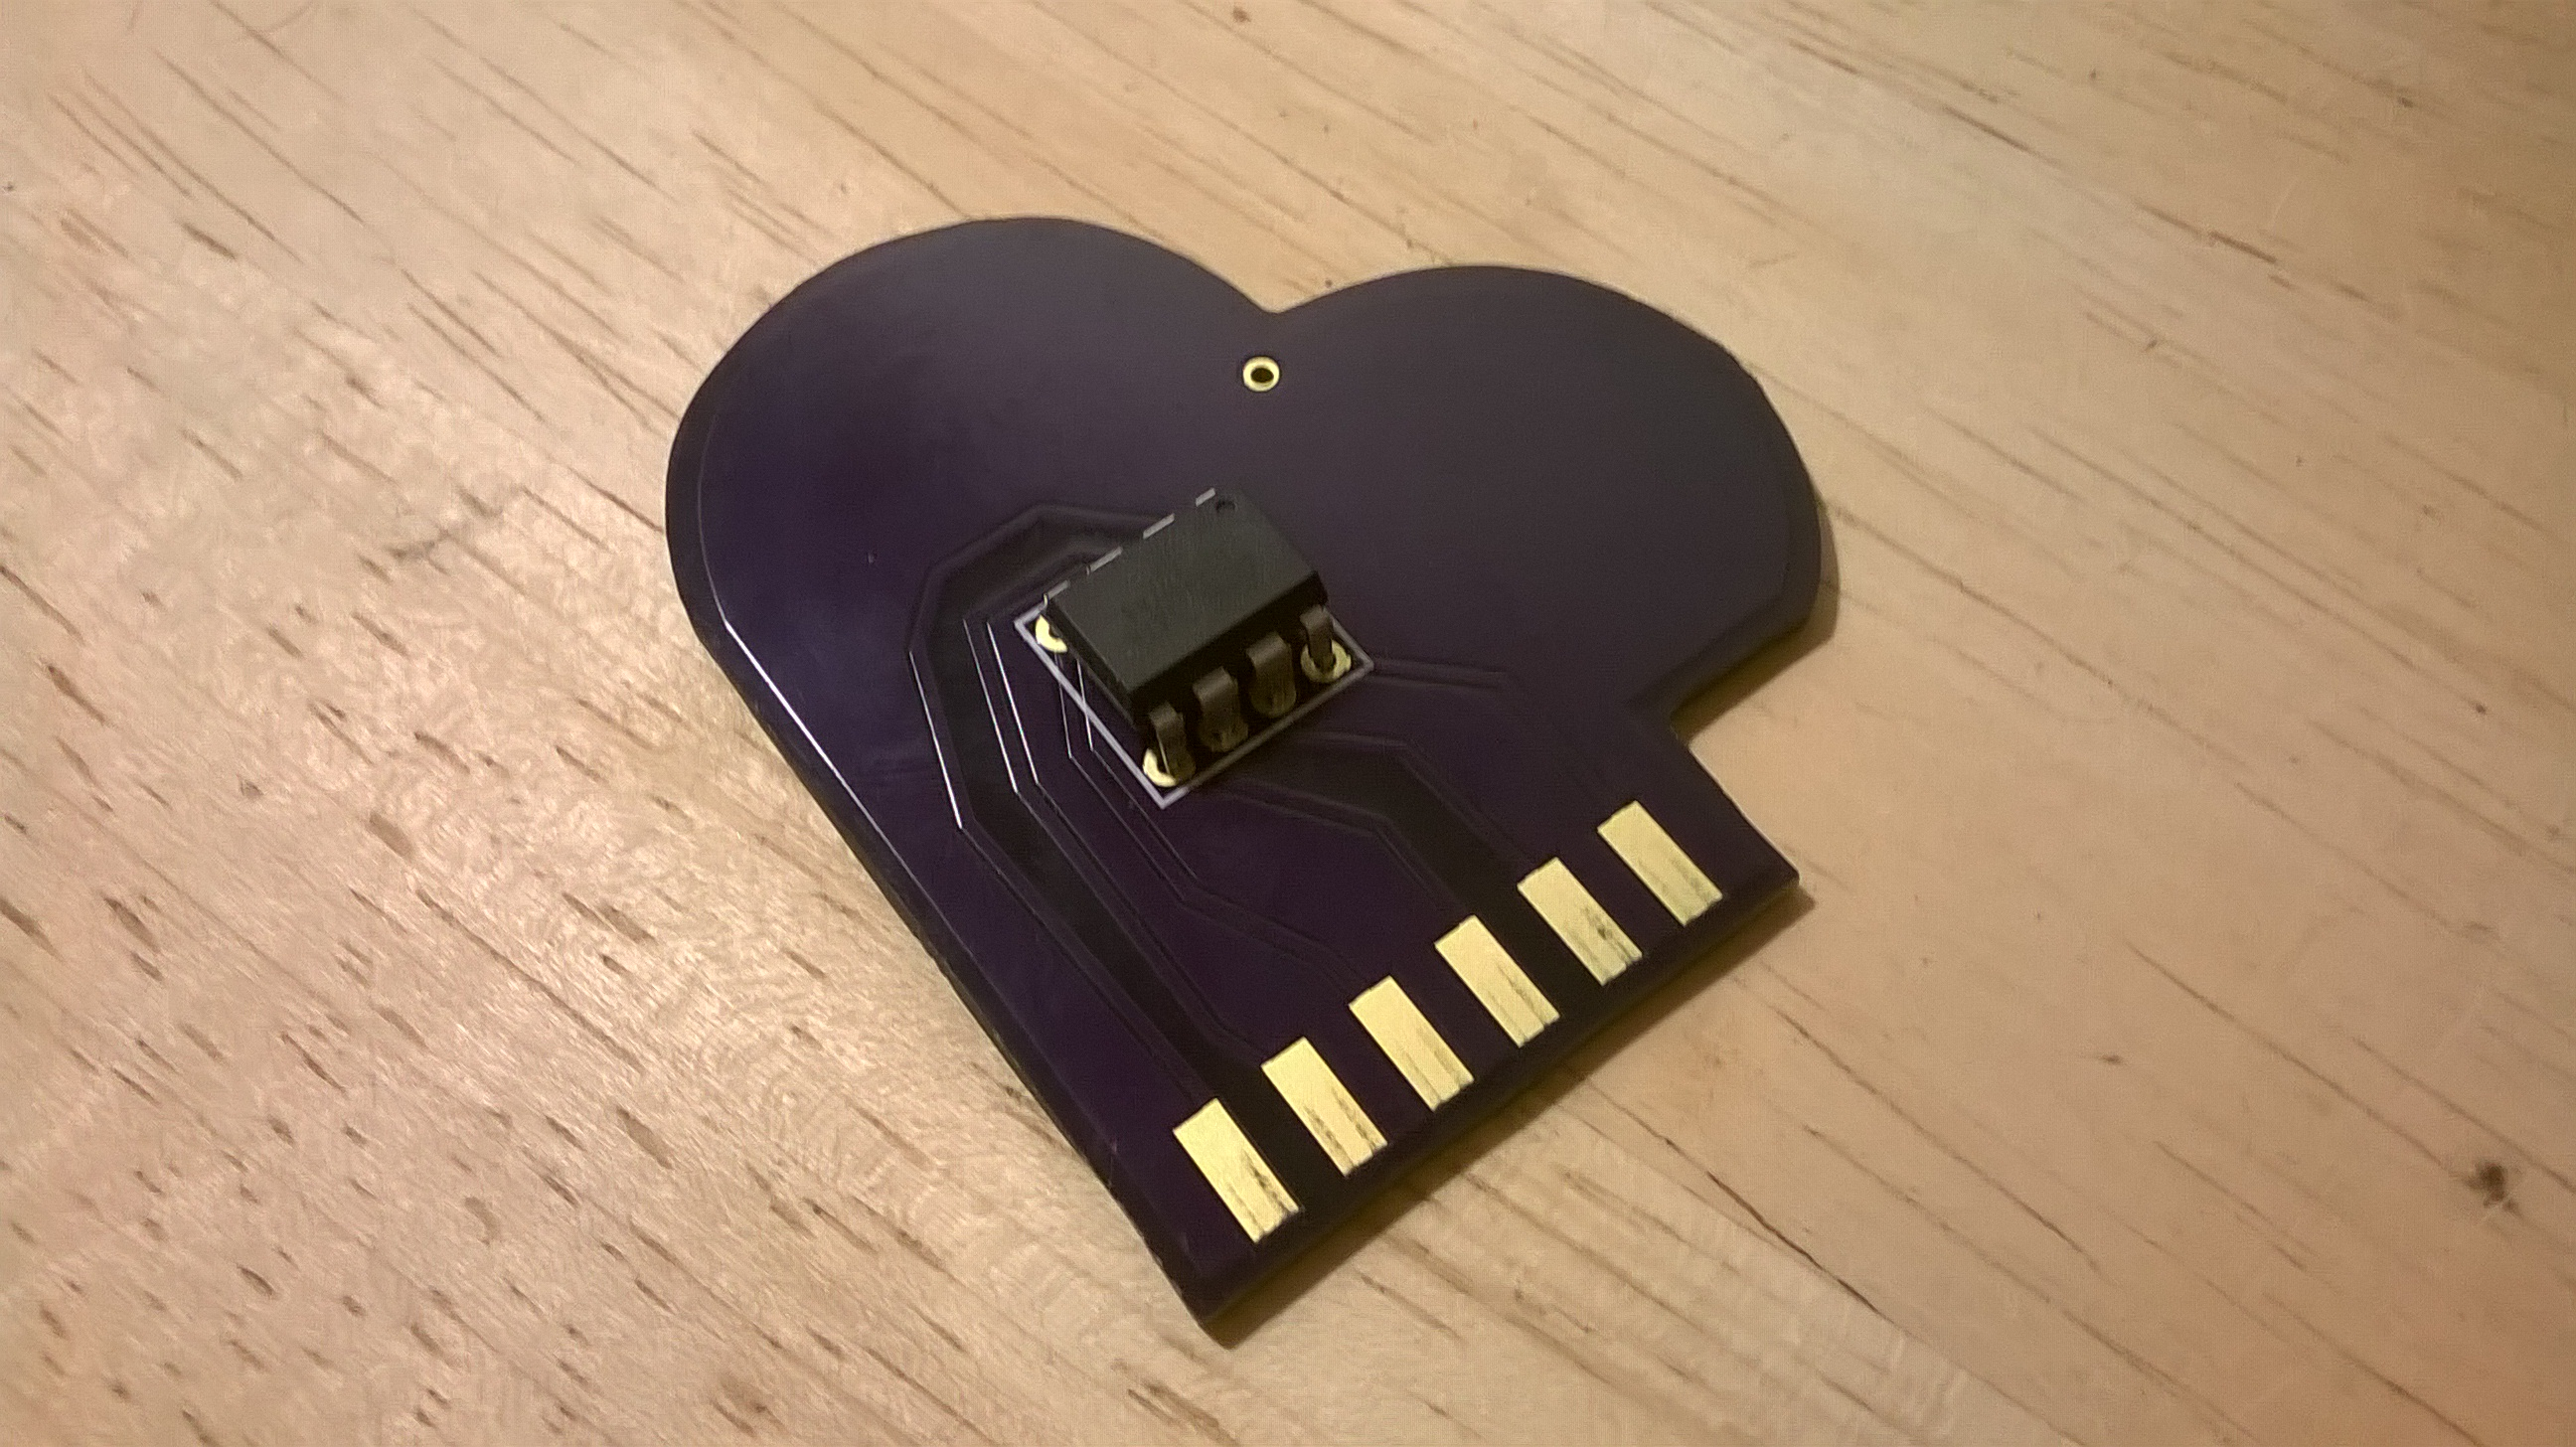 Custom designed circuit board pcb cartridge, in the shape of a heart